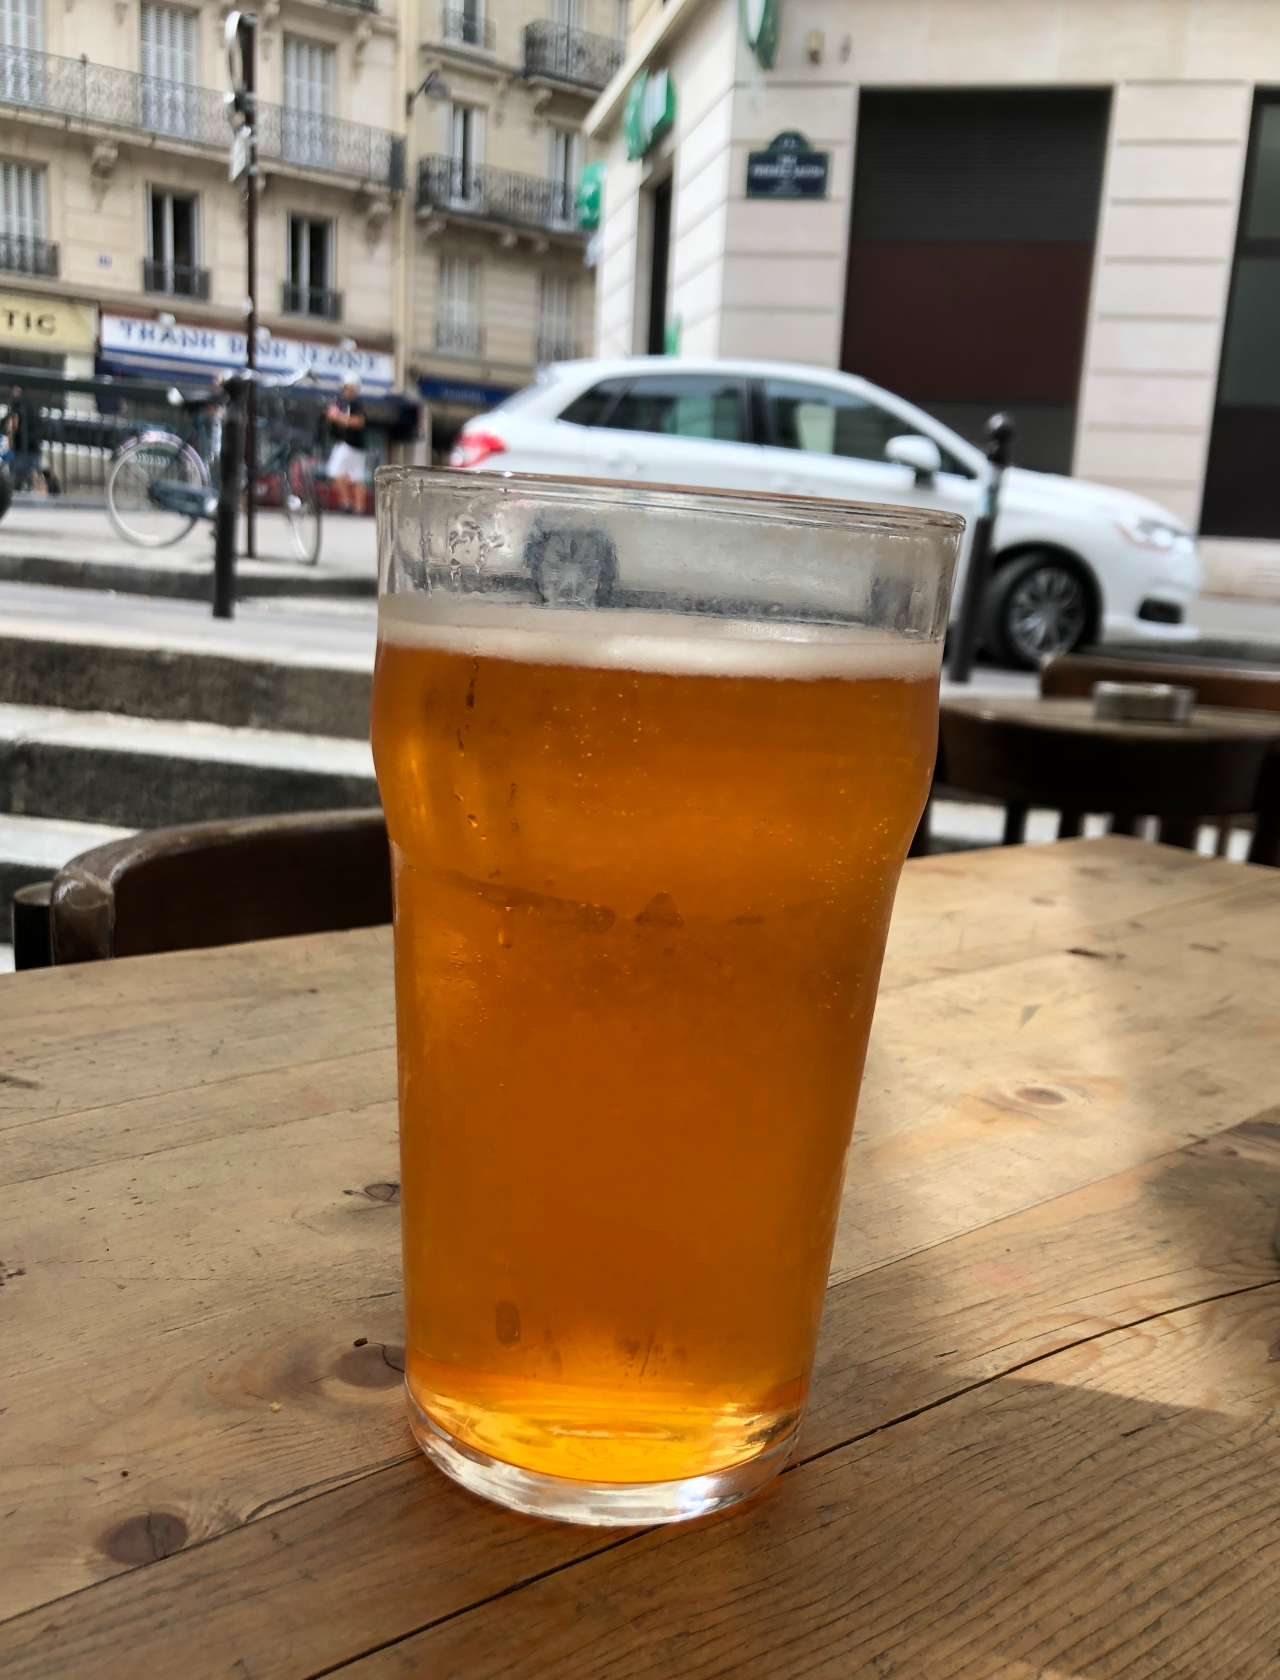 A ludicrously expensive pint in a Parisian cafe